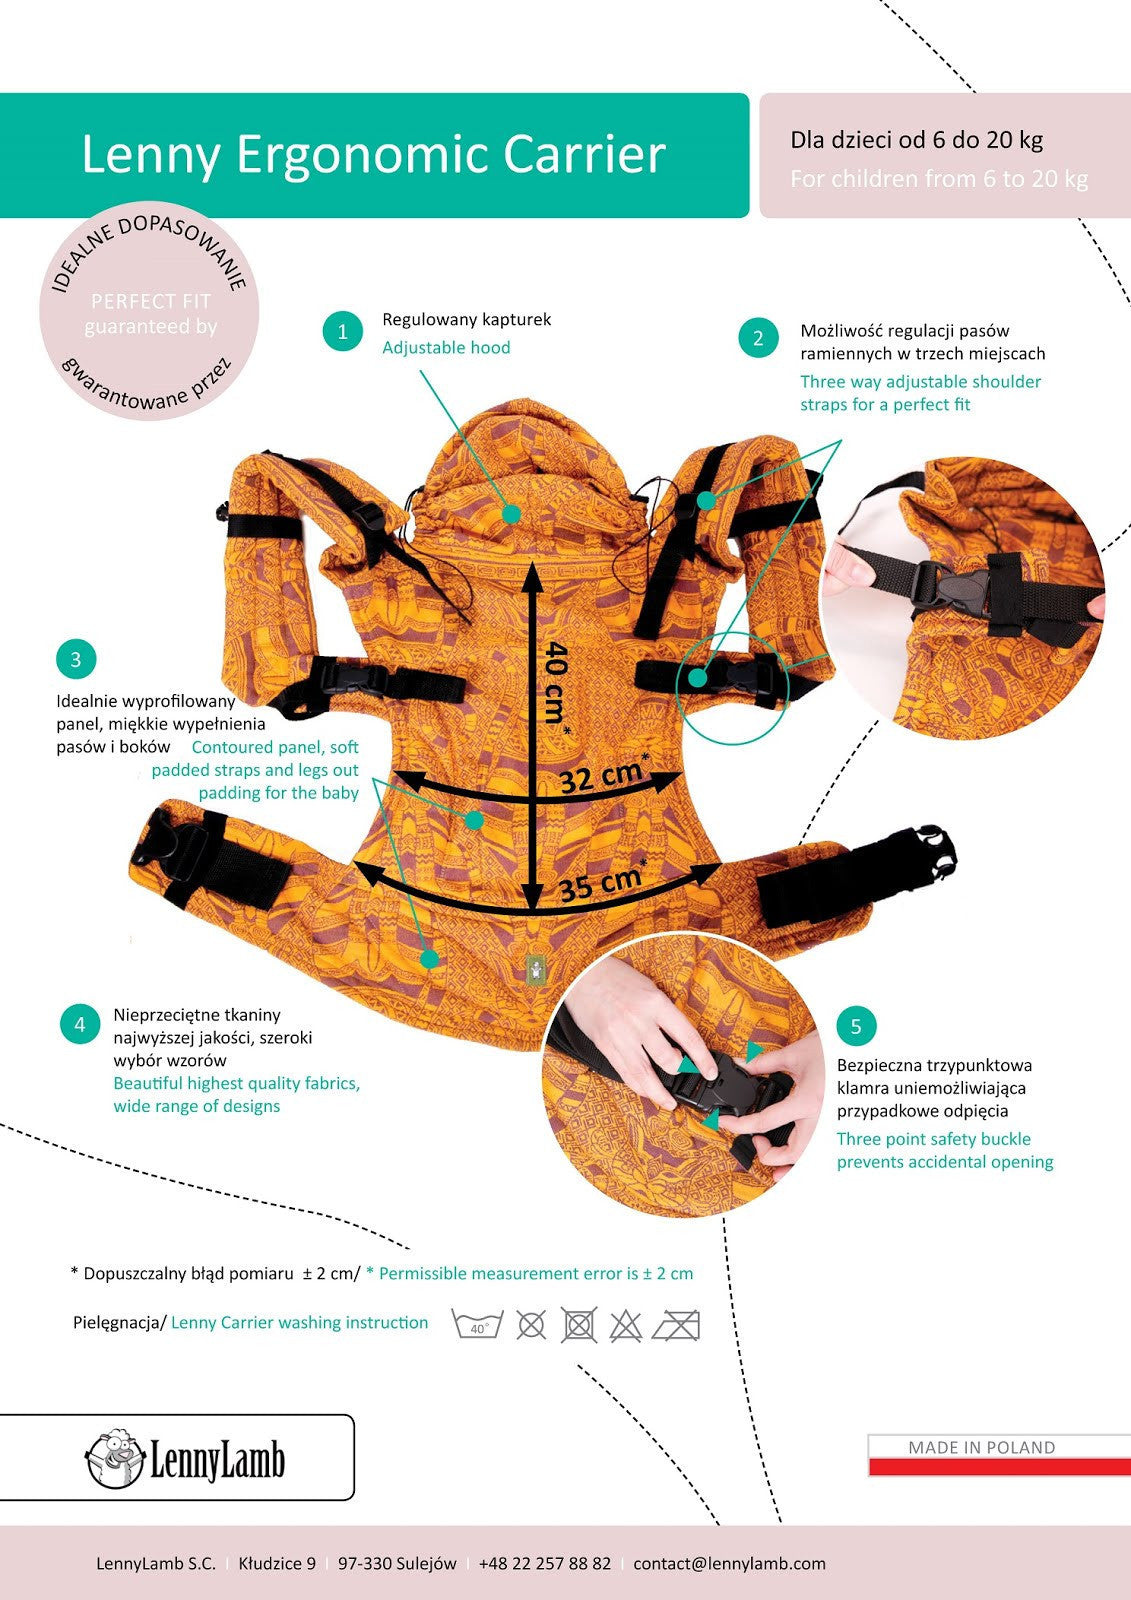 Lennylamb Ergonomic Baby Carrier Diagram